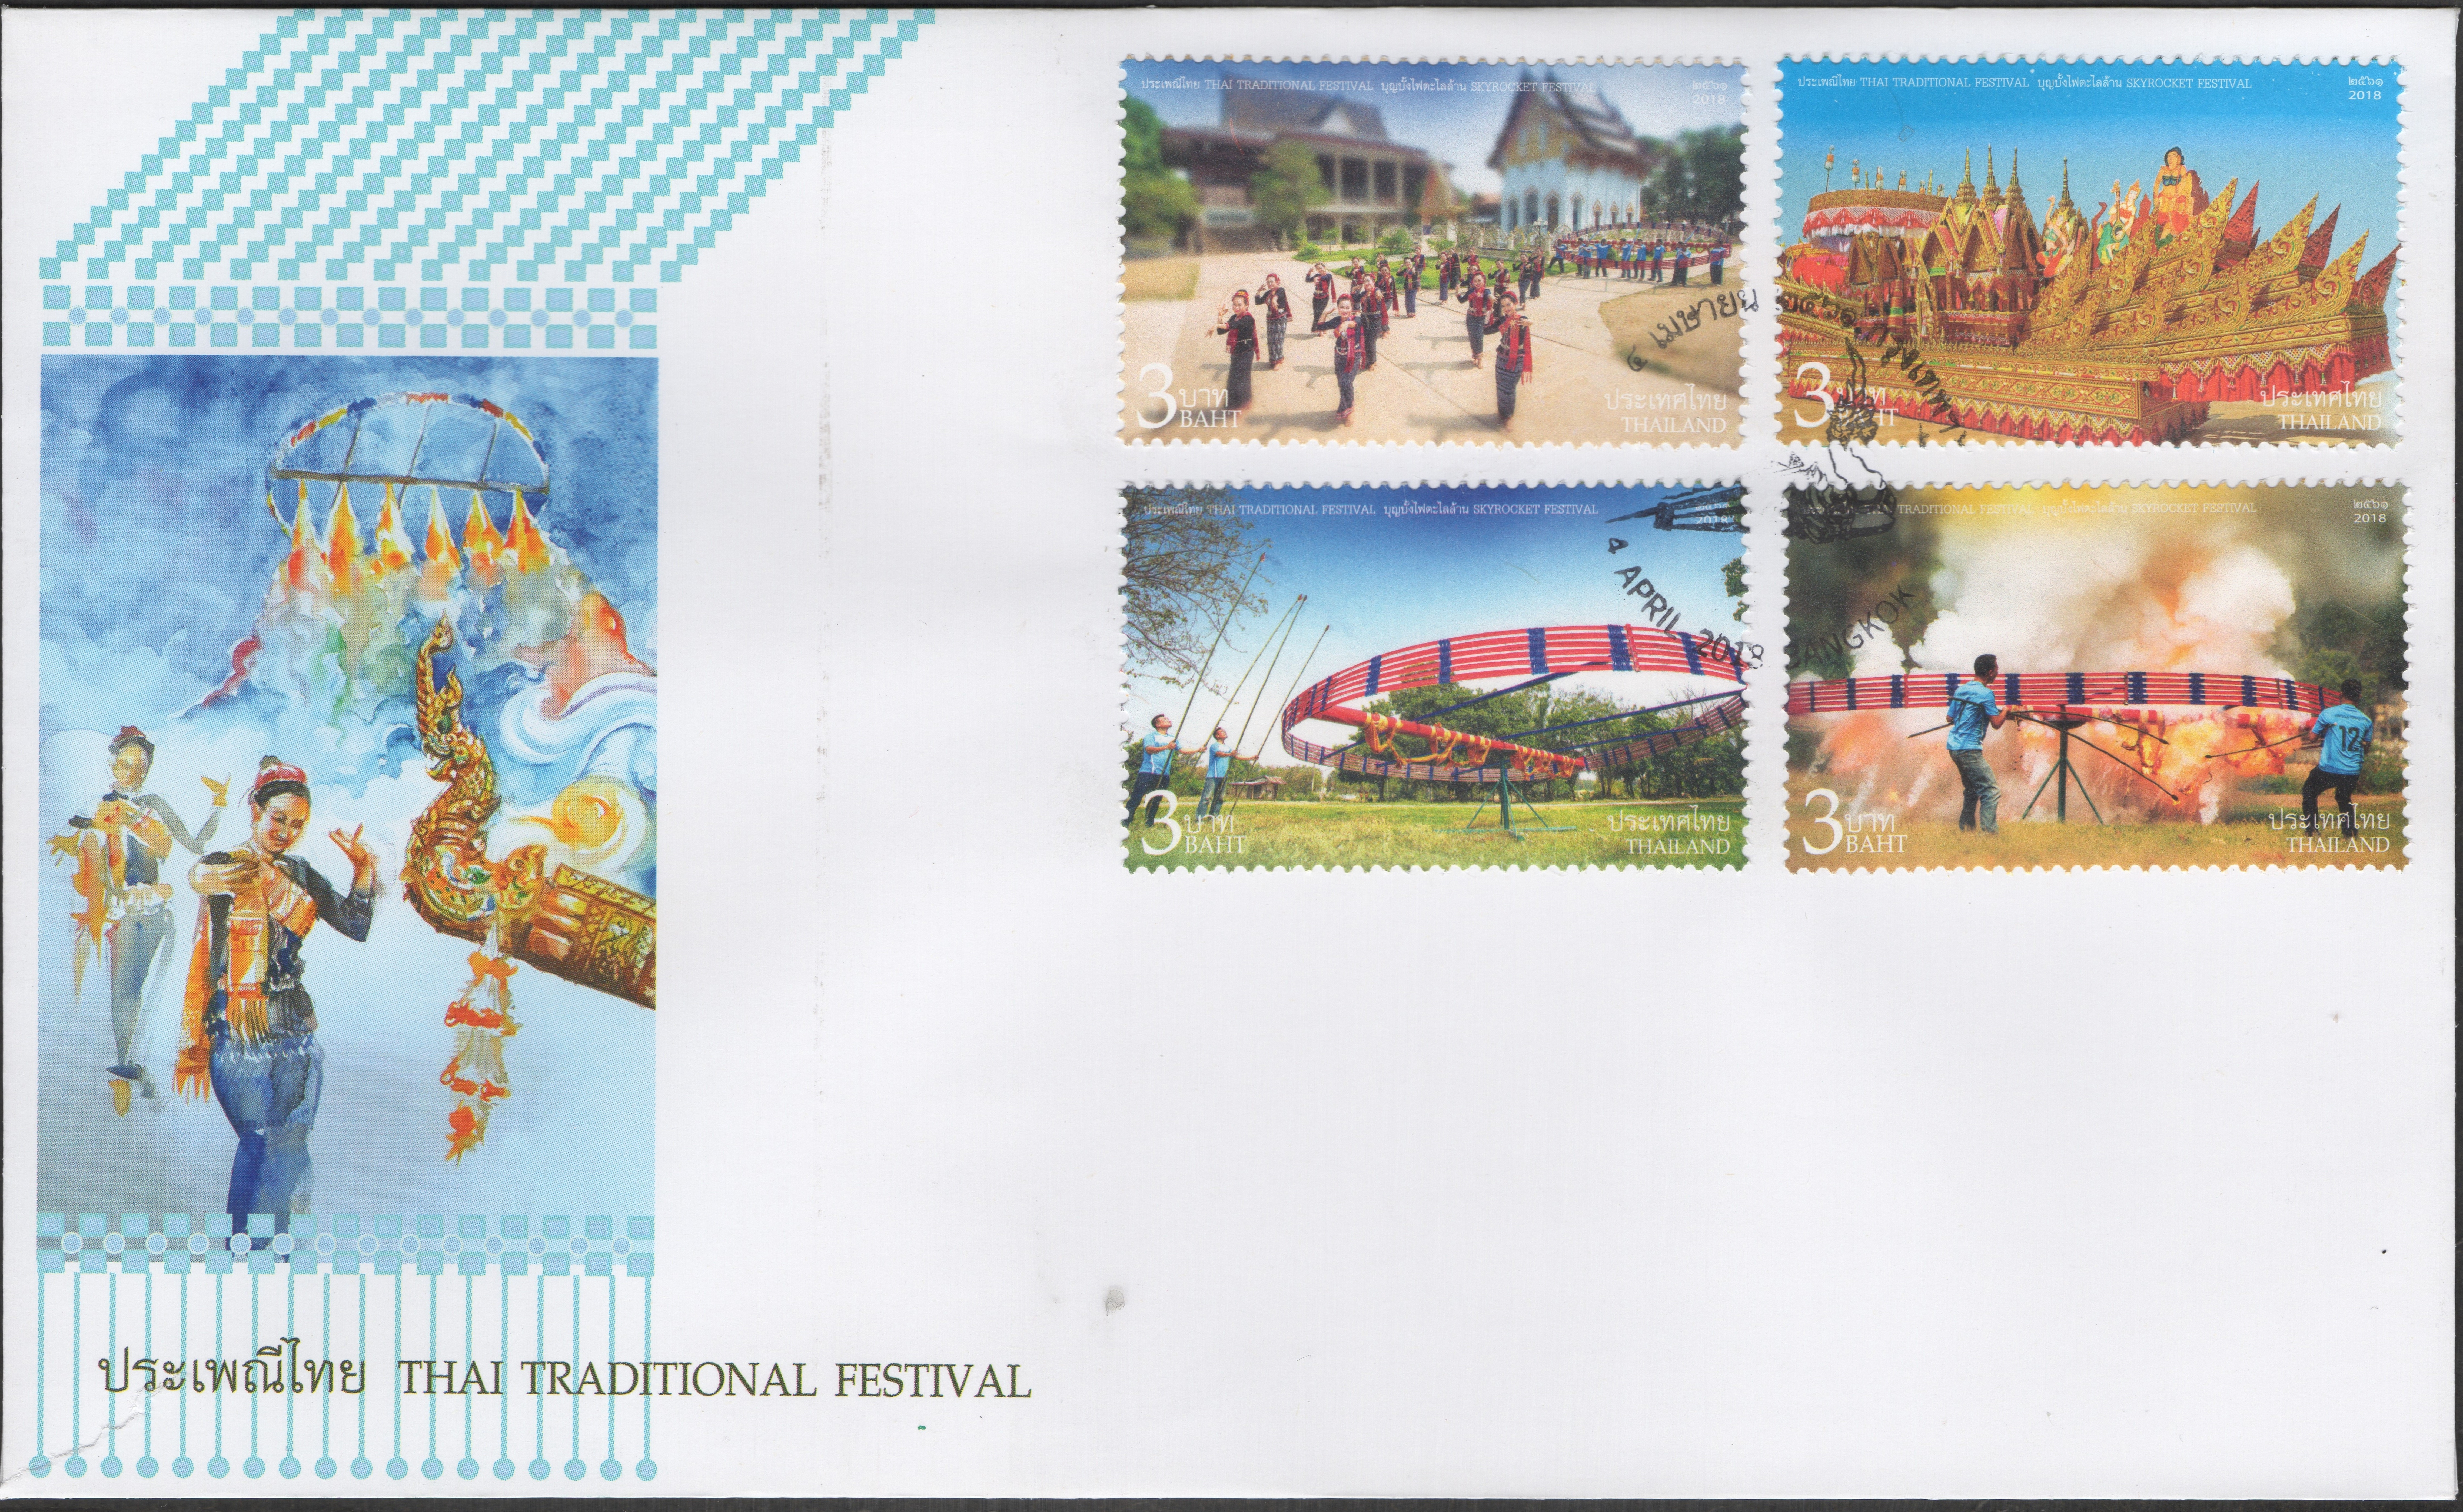 Thailand - Thailand Post #TH-1145 (2018) first day cover